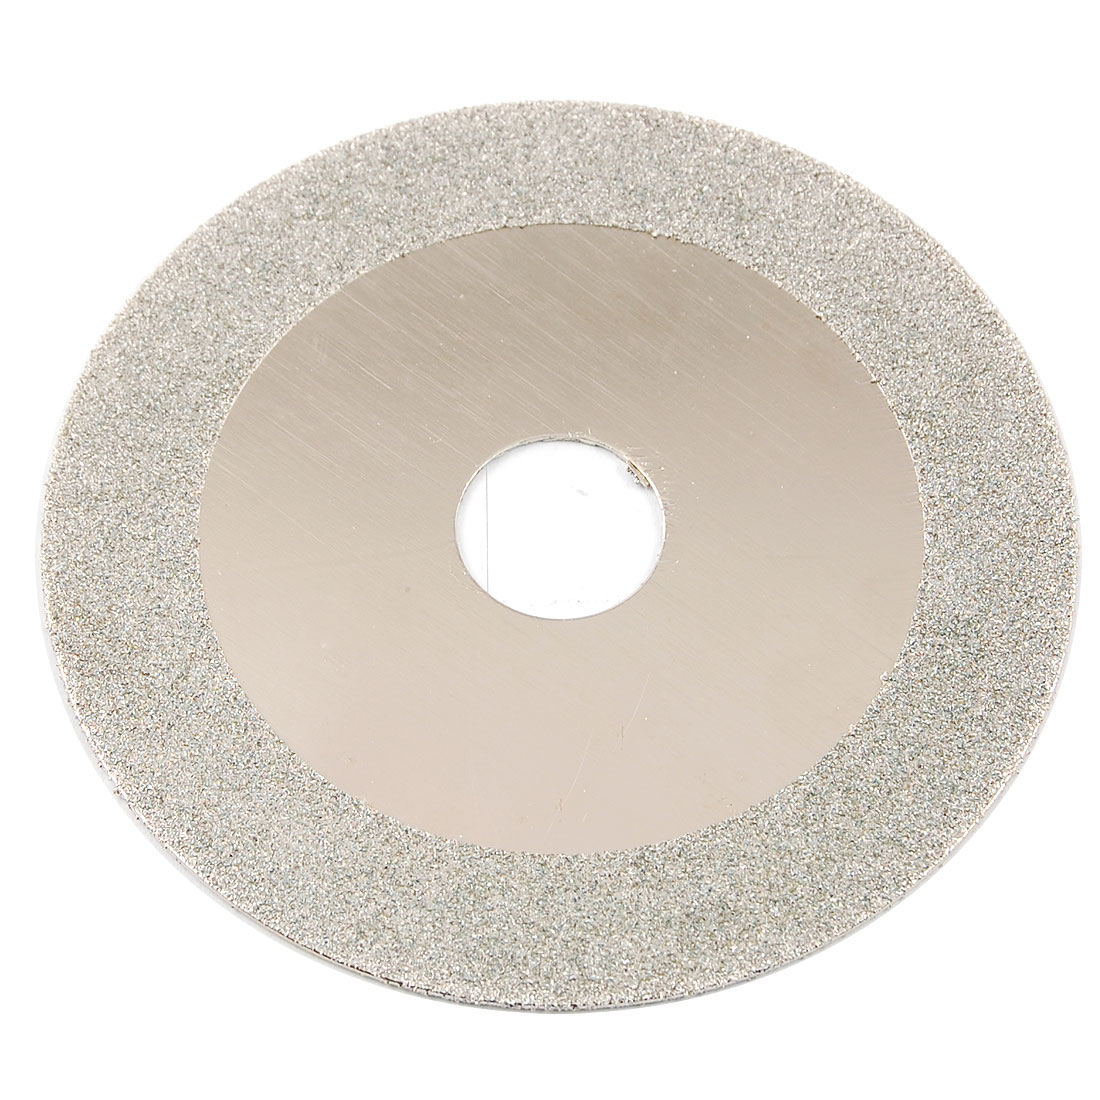 100mm Dia Coarse Grits Double Side Diamond Coated Glass Tile Cutting Disc